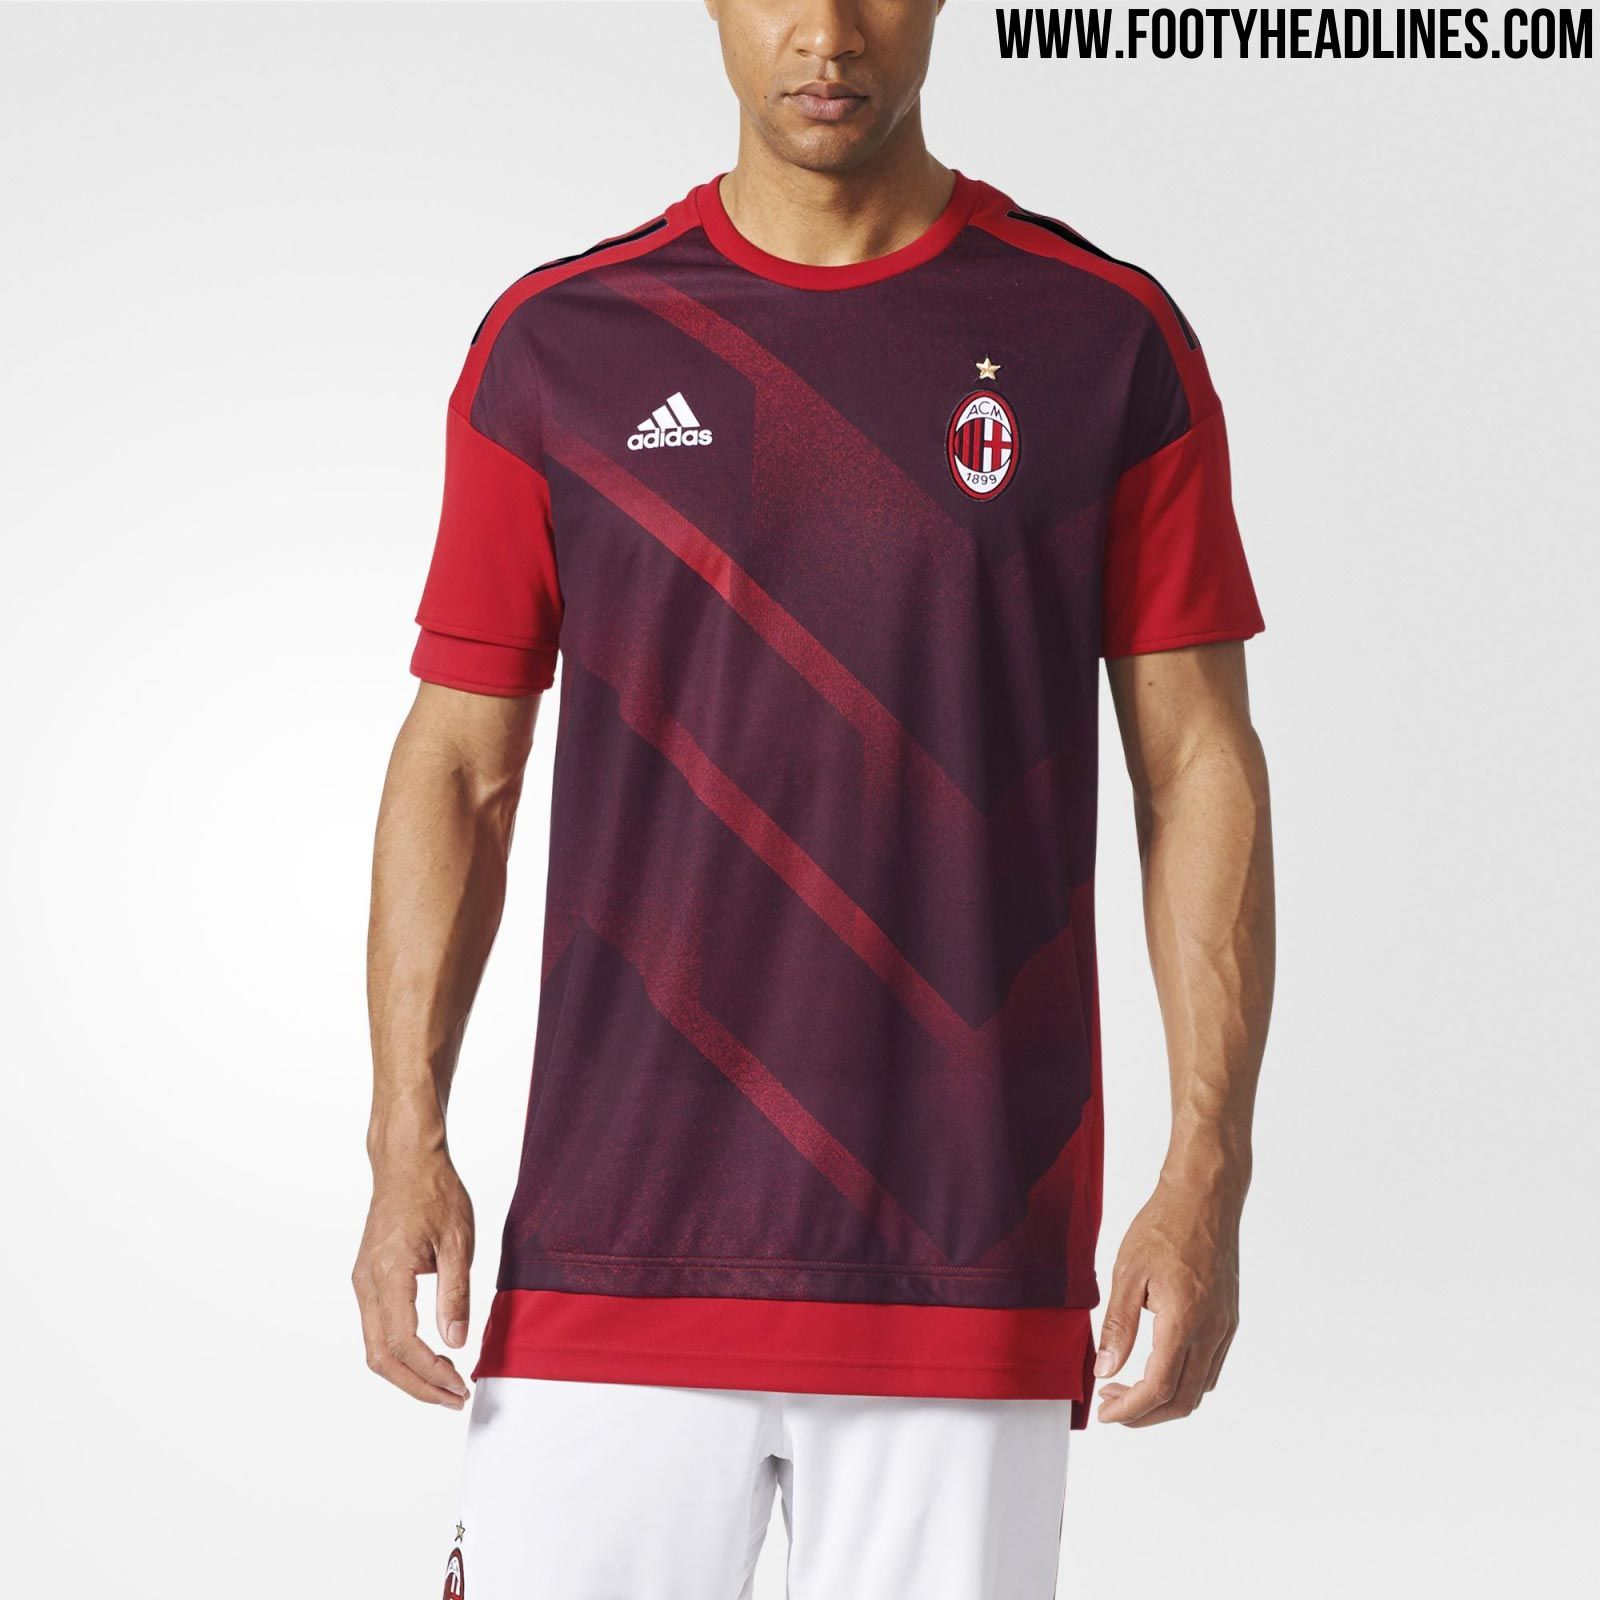 the milan 17 18 pre match shirt introduces a 1990s. Black Bedroom Furniture Sets. Home Design Ideas